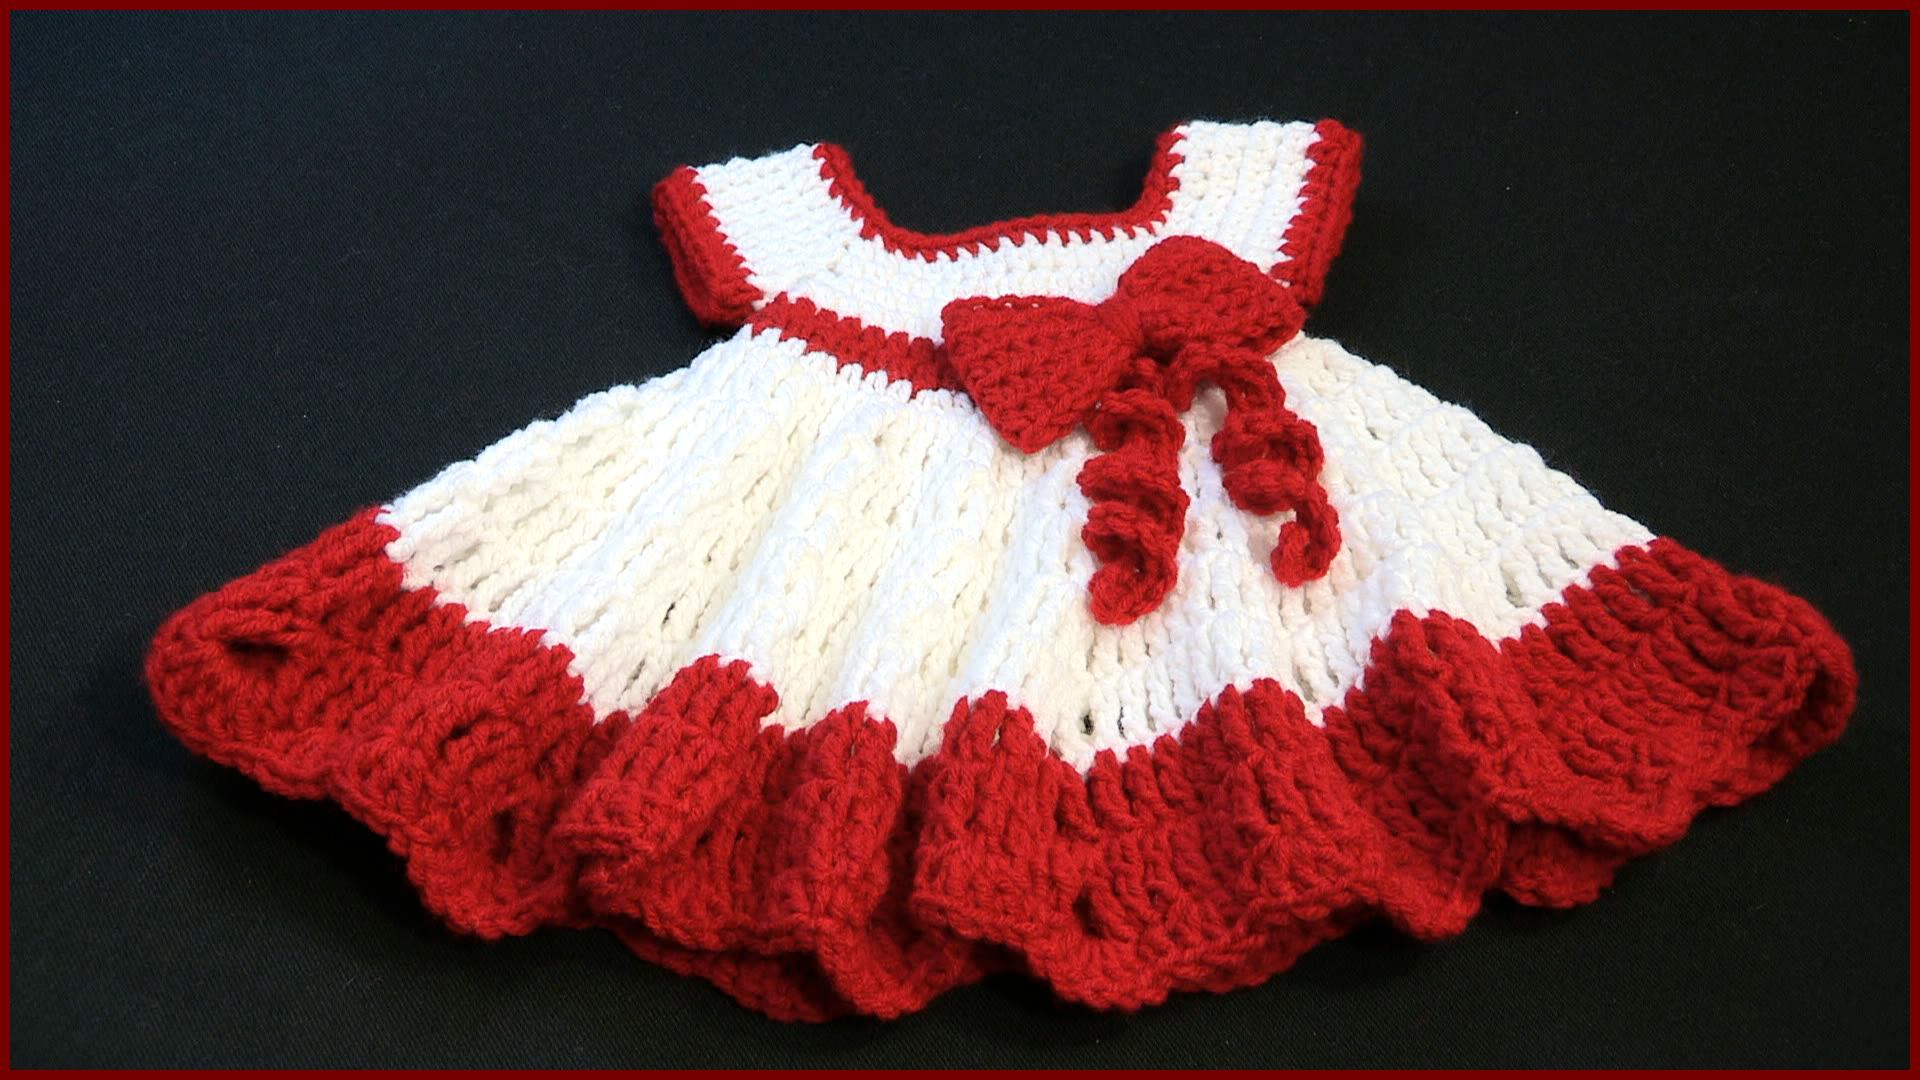 Crochet Baby Winter Dress Pattern : Crochet Tutorial: Baby Dress with a Bow YARNutopia by ...